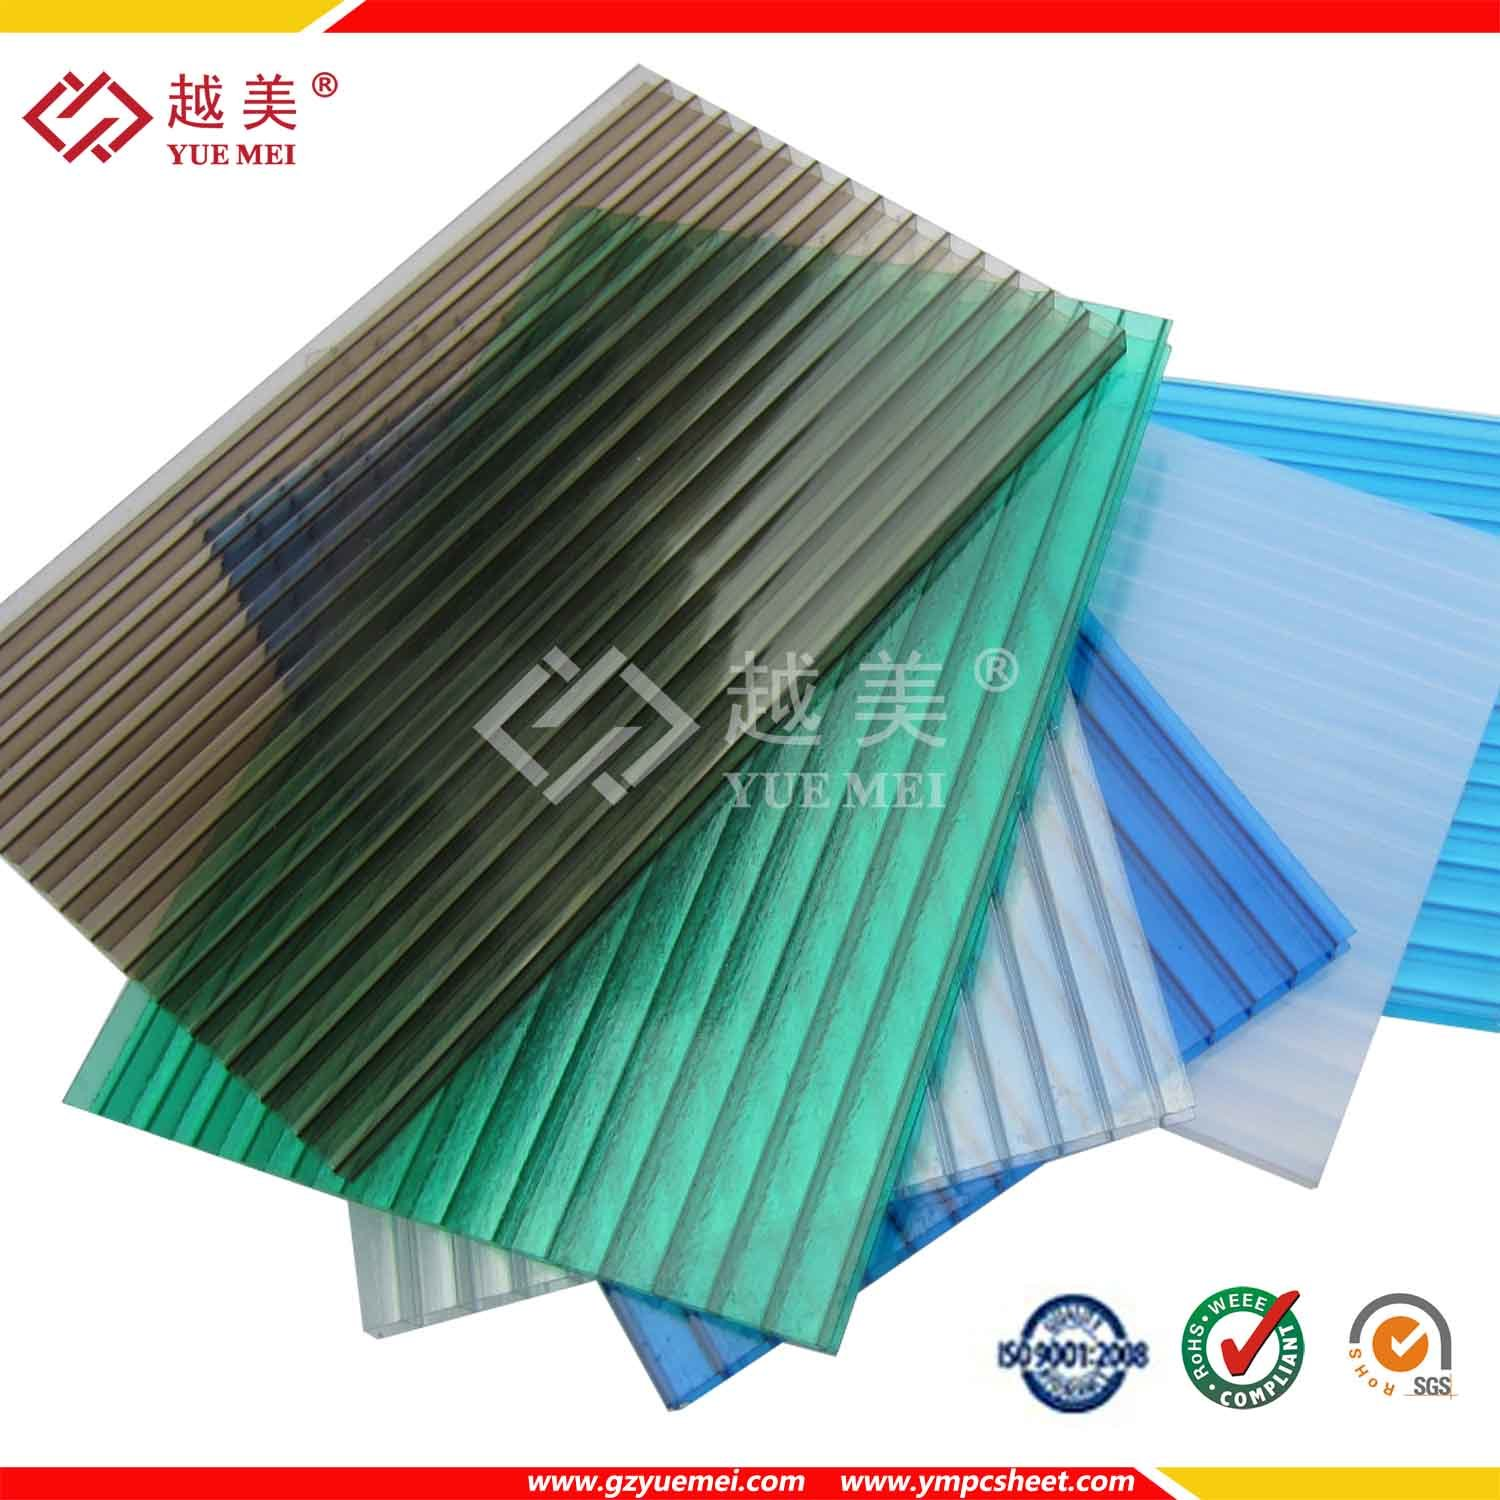 Polypropylene Building Material : China hollow polycarbonate sheet plastic building pc